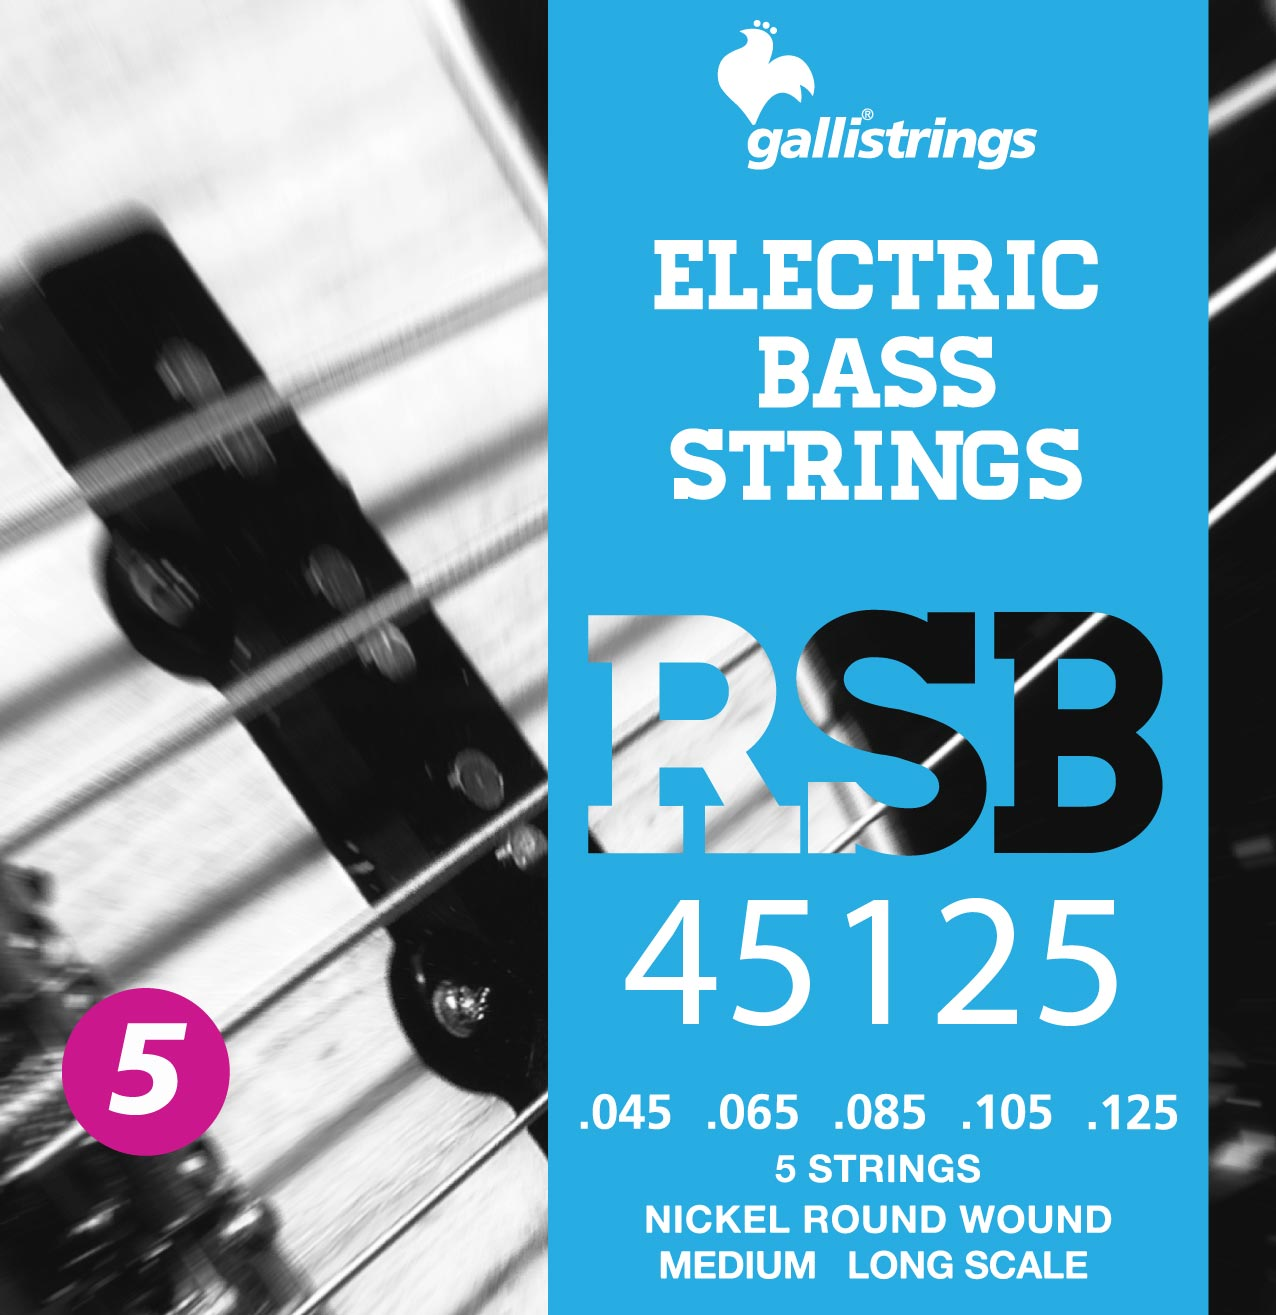 RSB45125 5 strings Medium